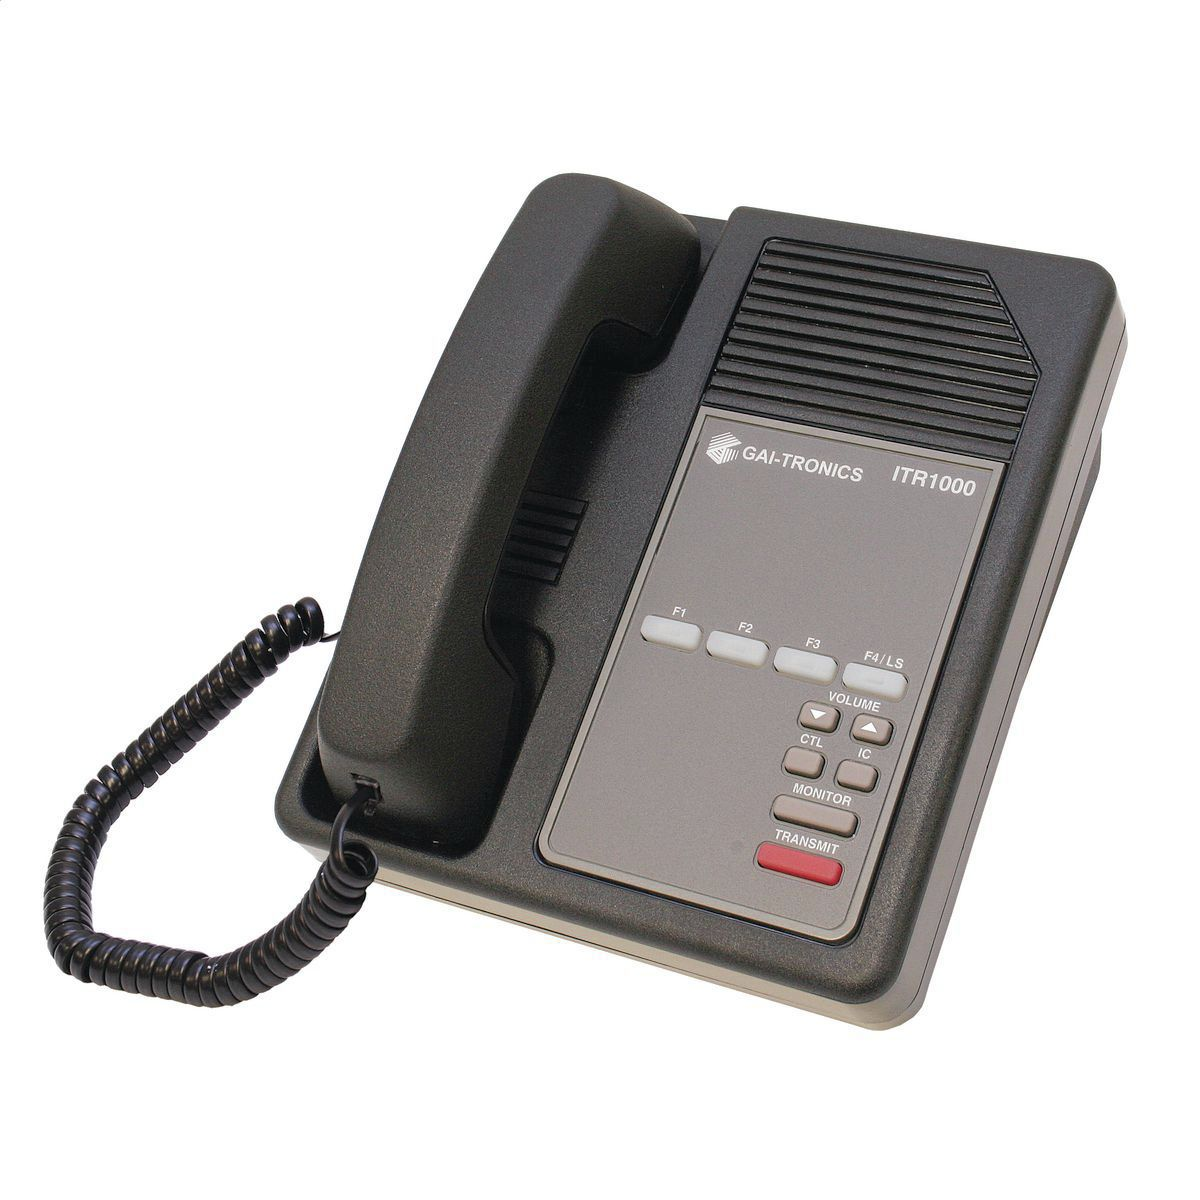 Interphone Pour Bureau Encastrable Itr1000 001 Gai Tronics A